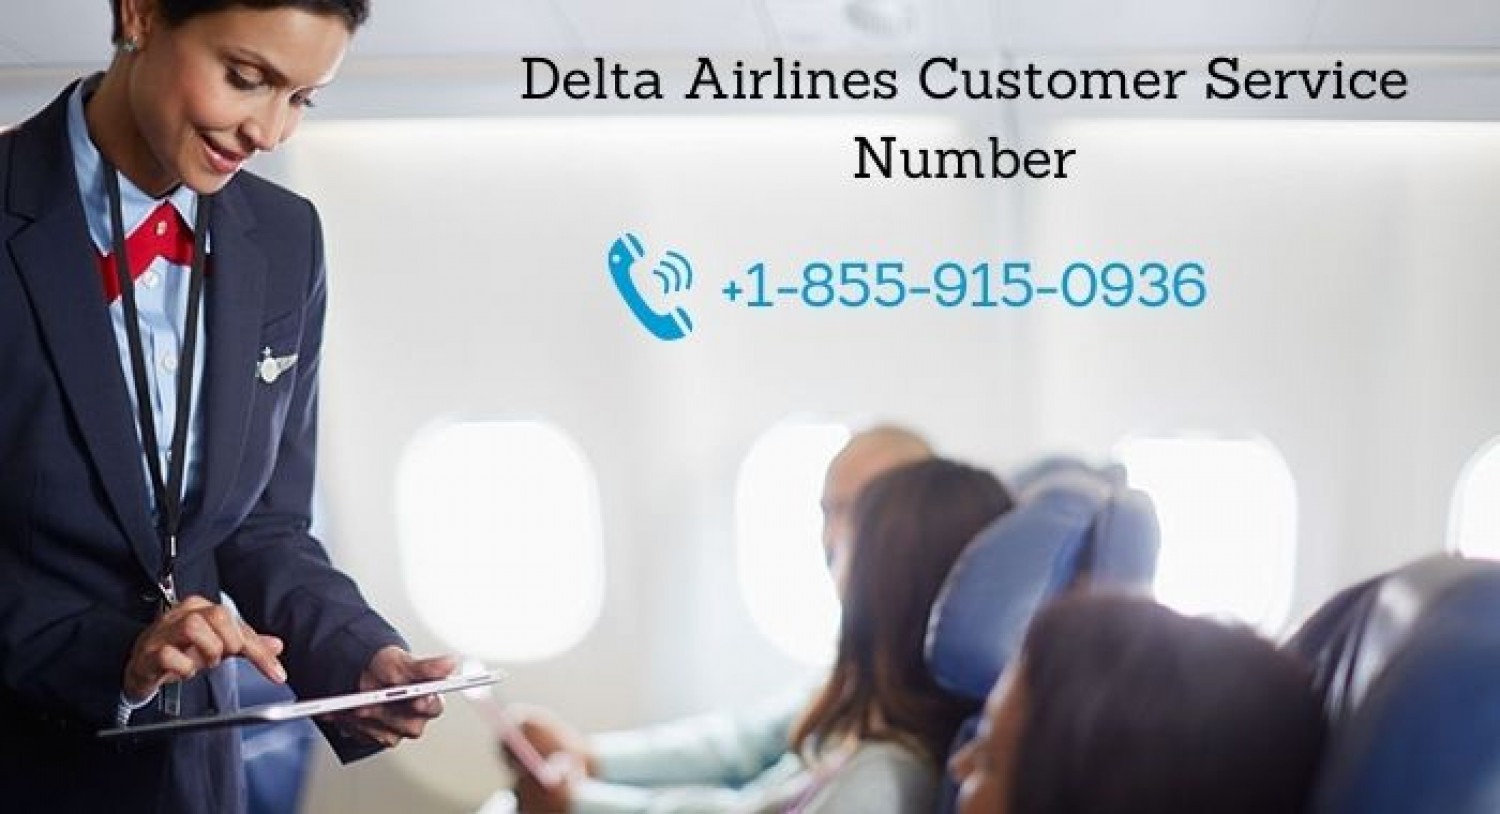 Delta Airlines Customer Service Number Infographic